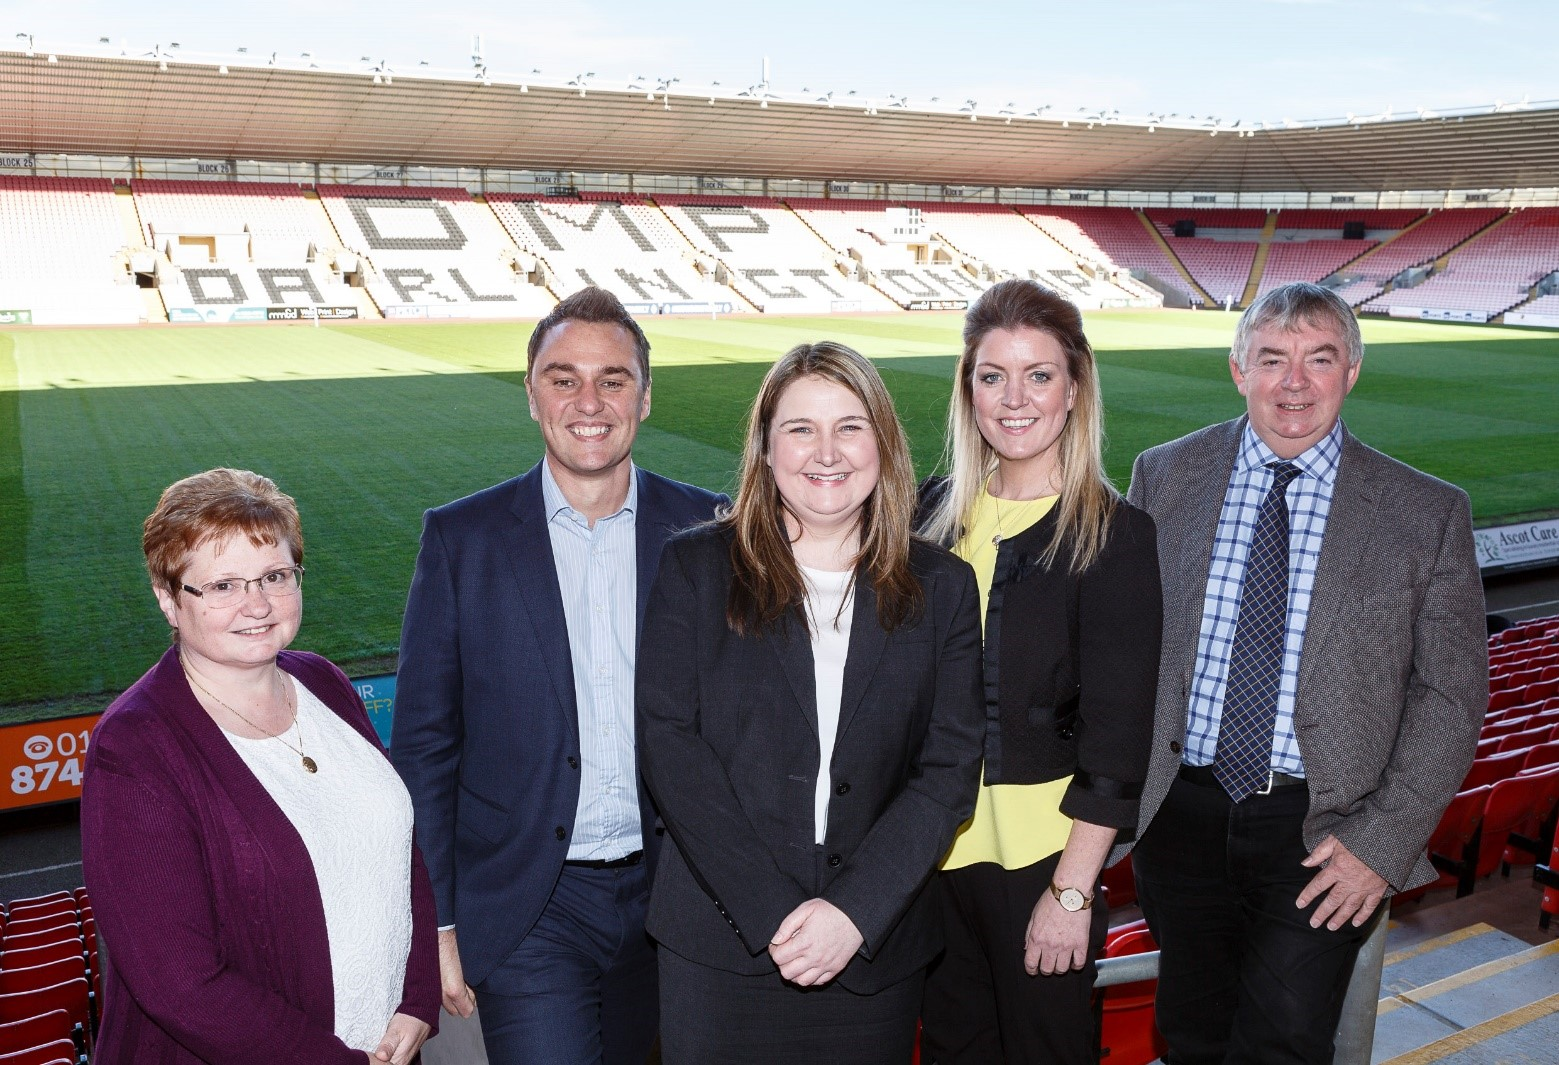 Darlington Business Club at Mowden Park Rugby Club